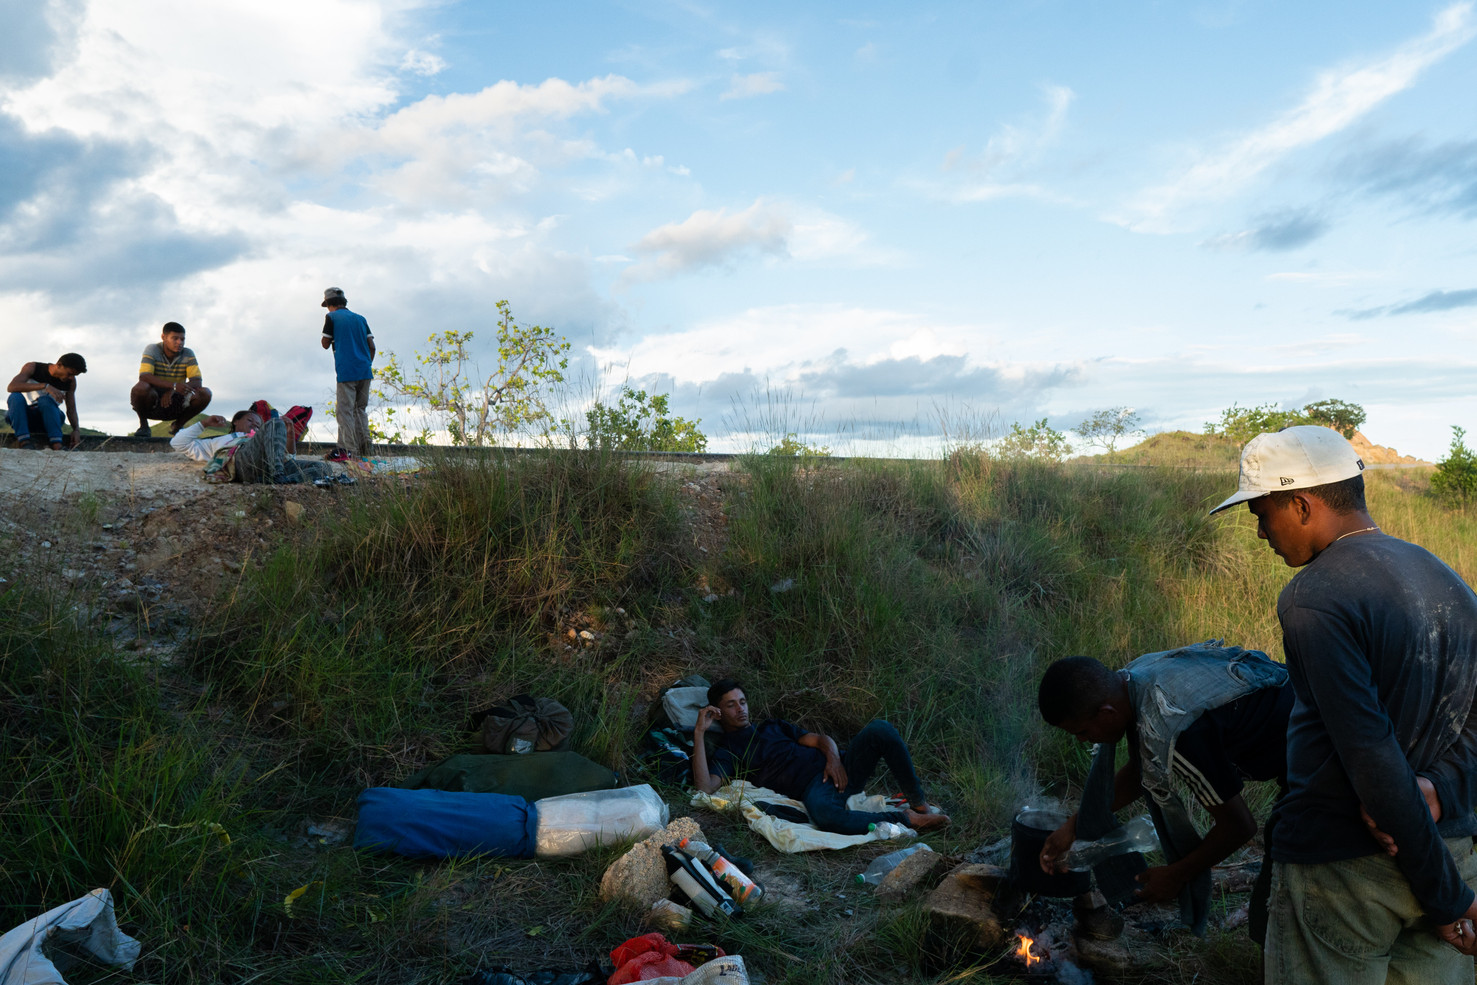 Venezuelan immigrants resting during crossing from Pacaraima city to Boa Vista, capital of Roraima state, on a journey of approximately 133 miles (214 kilometers) walking through the BR-174 highway. Brazil, July 16, 2019.